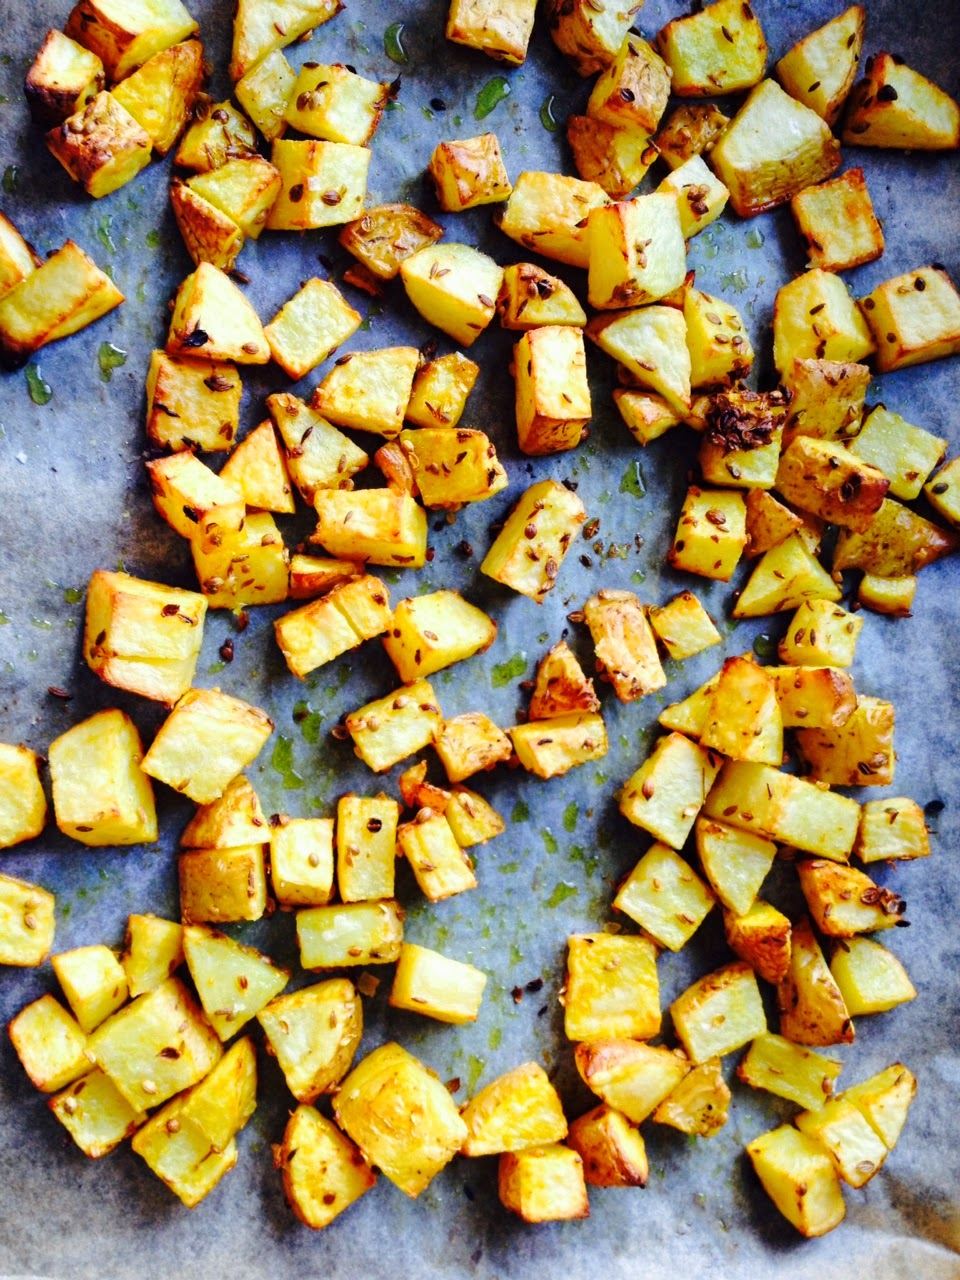 Crunchy Potatoes With Indian Spices Photo And Recipe Lucy Corry/The Kitchenmaid